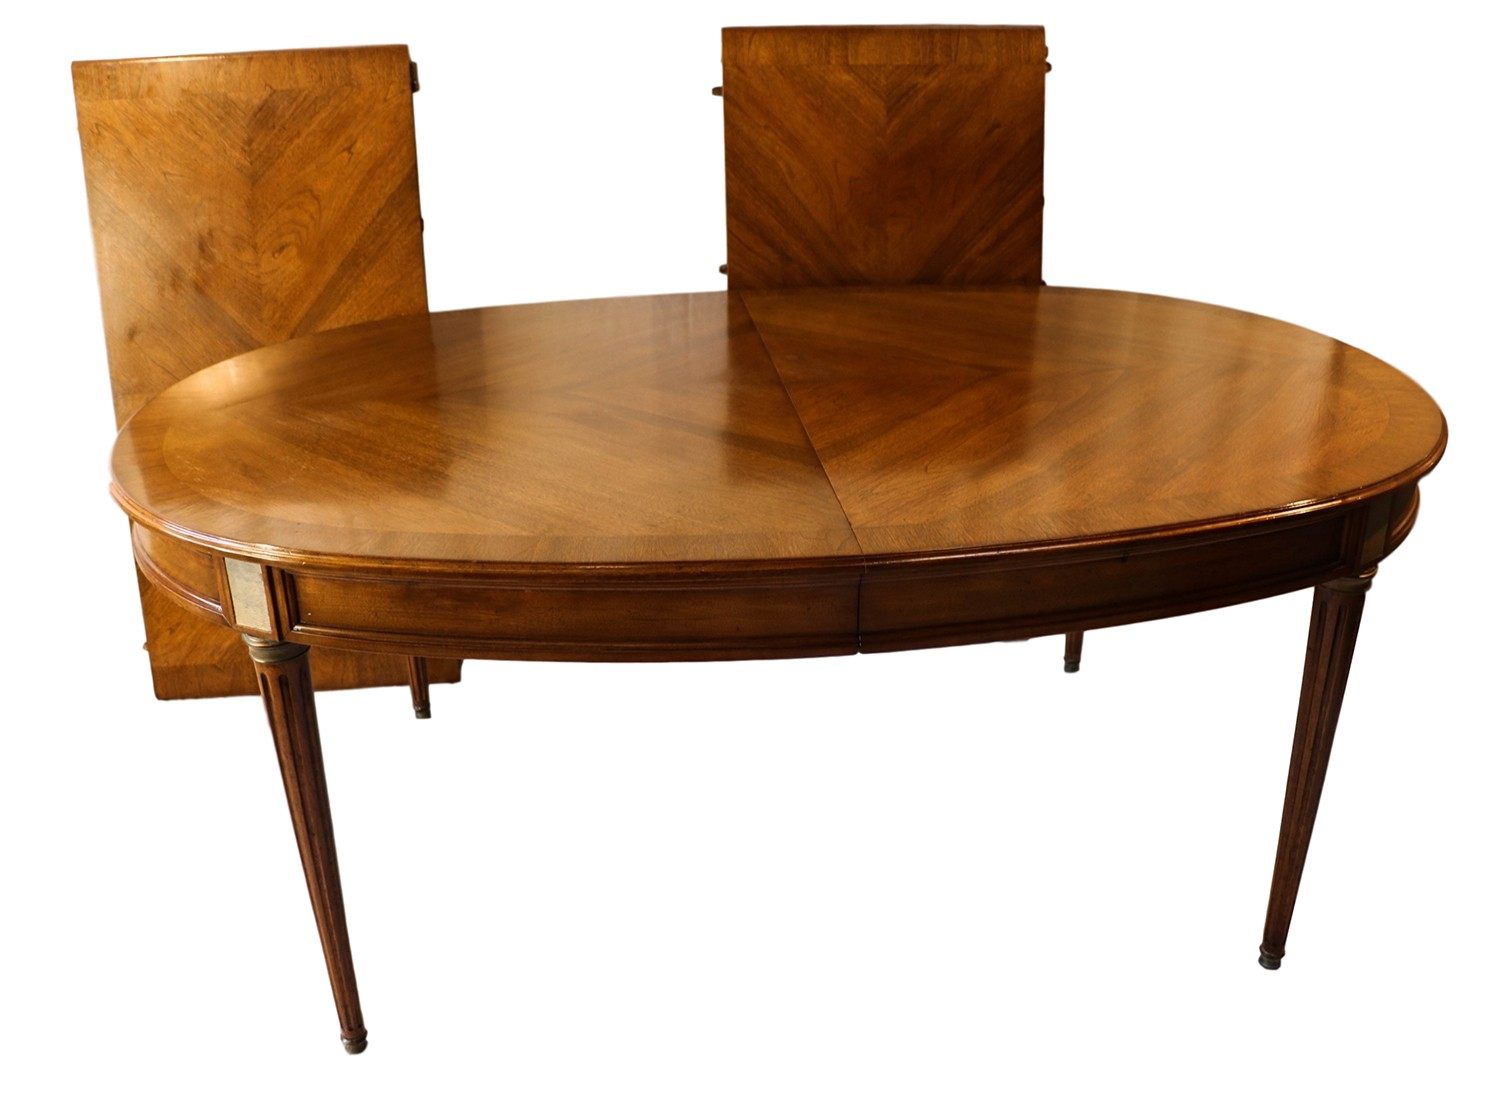 French Directoire Style Oval Walnut extending Dining Room